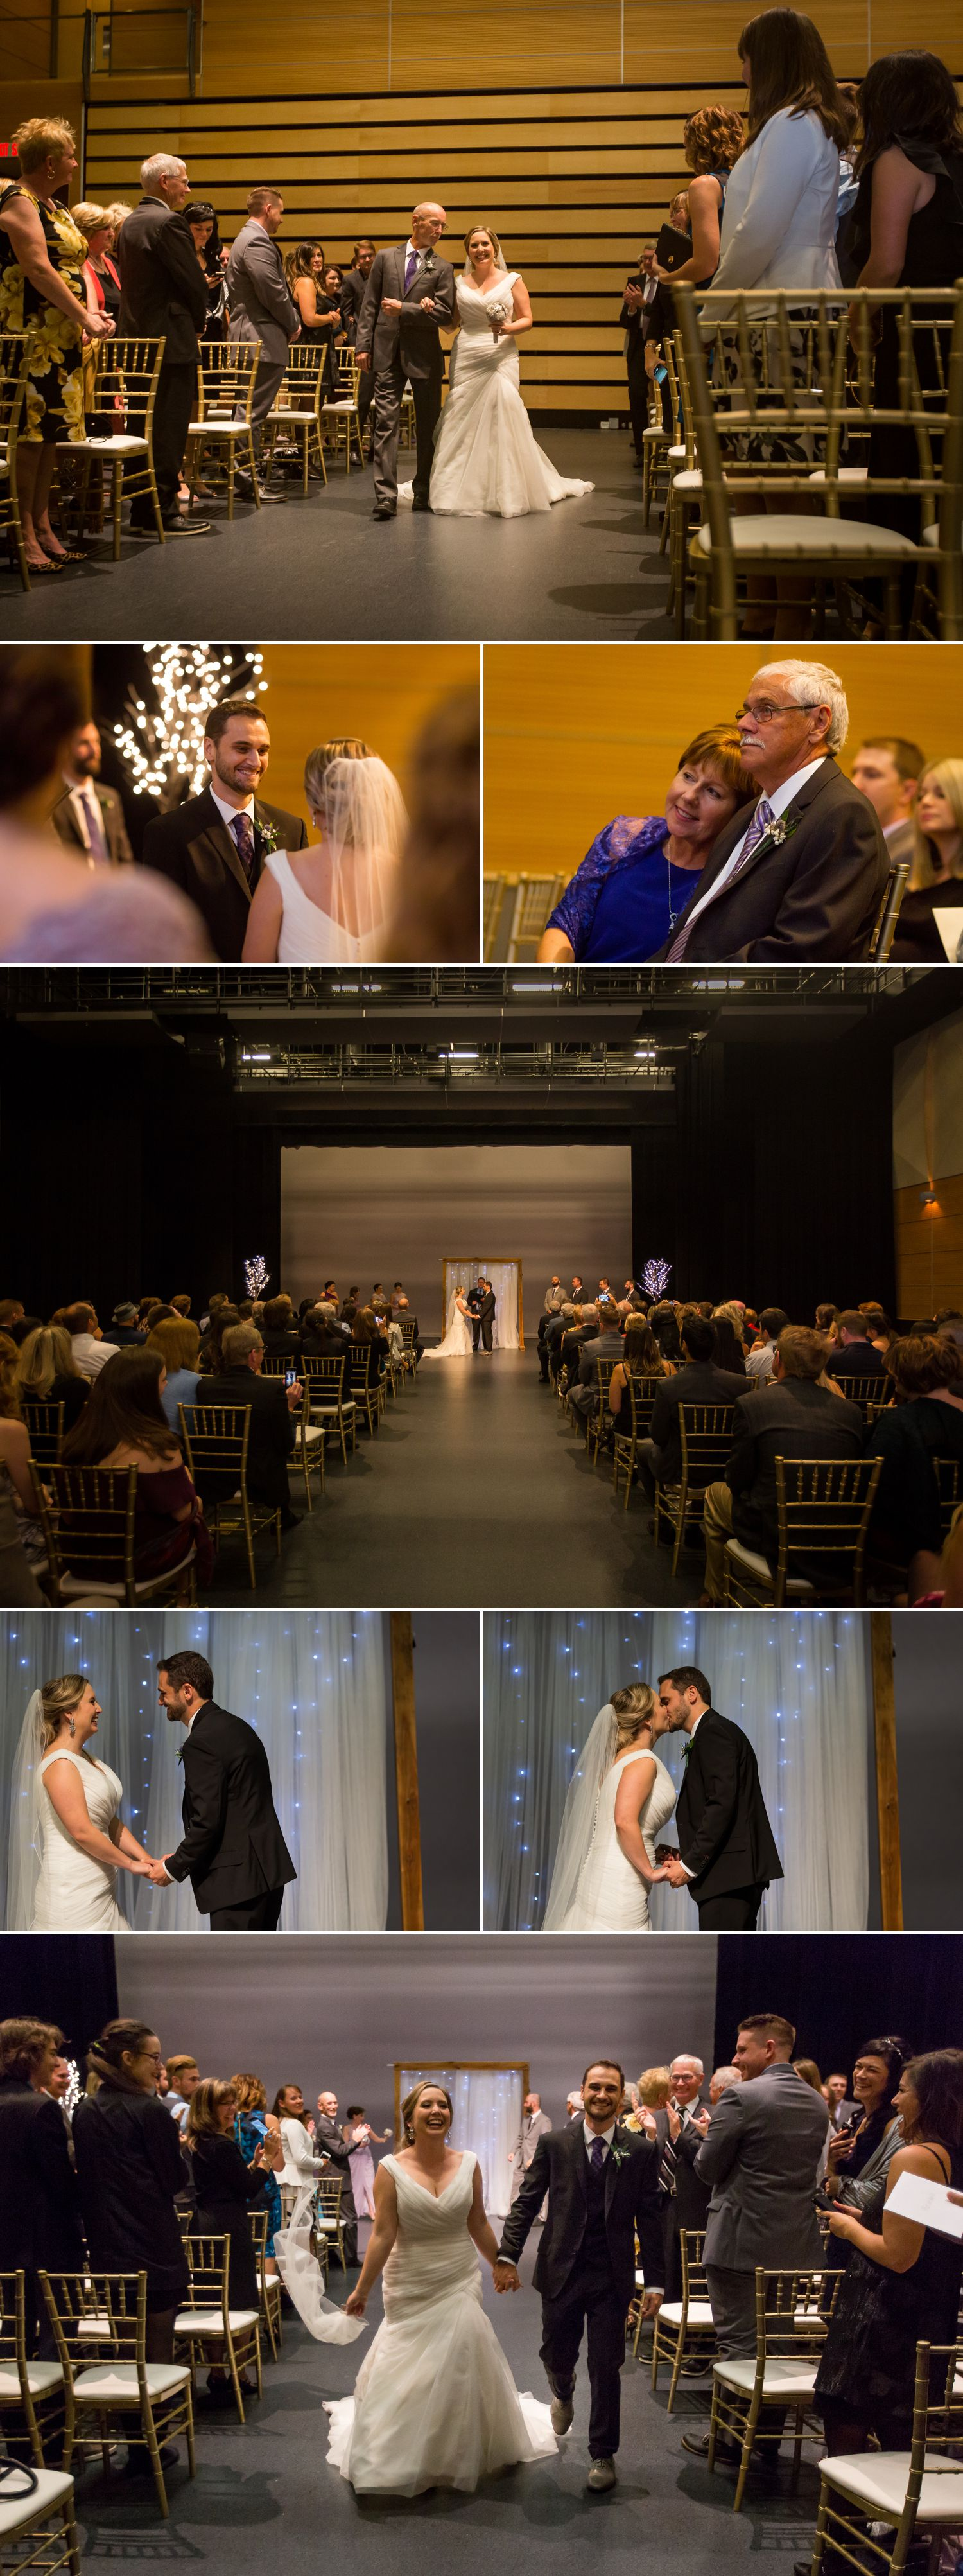 A wedding ceremony taking place inside the Canadian Aviation and Space Museum in downtown Ottawa